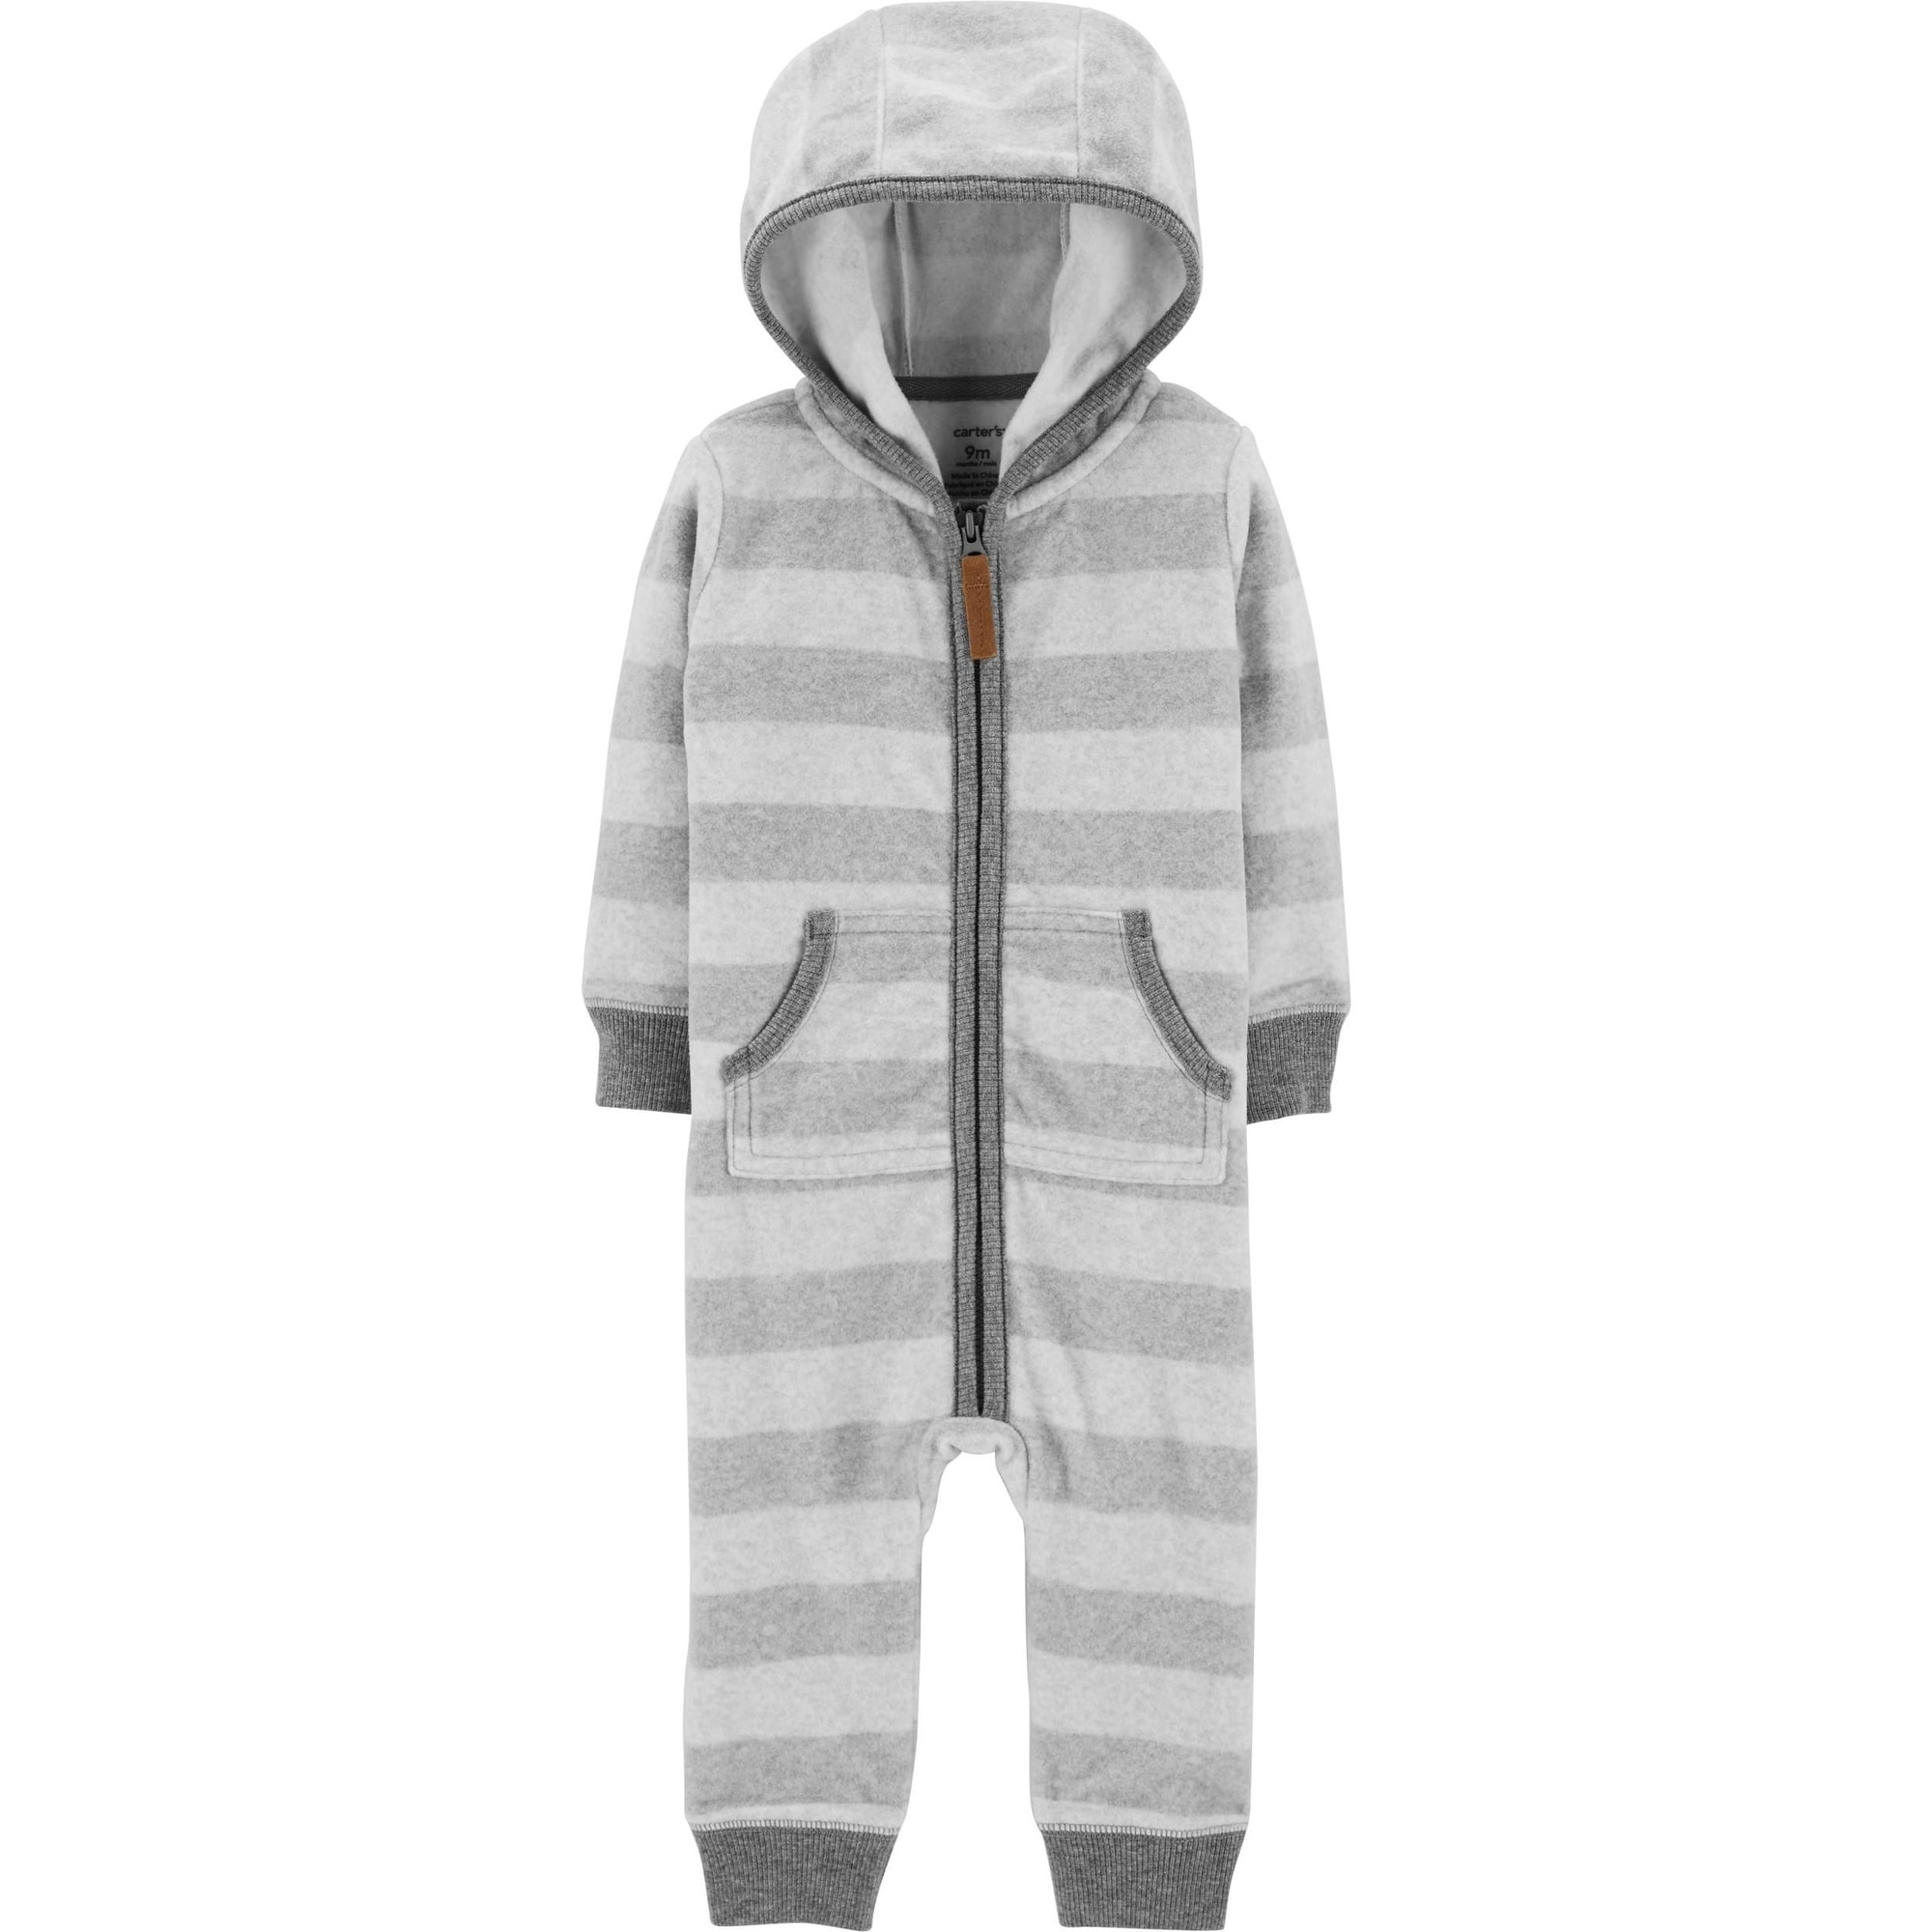 a896b51c8 Buy Boys' Outerwear Online at Overstock   Our Best Boys' Clothing Deals